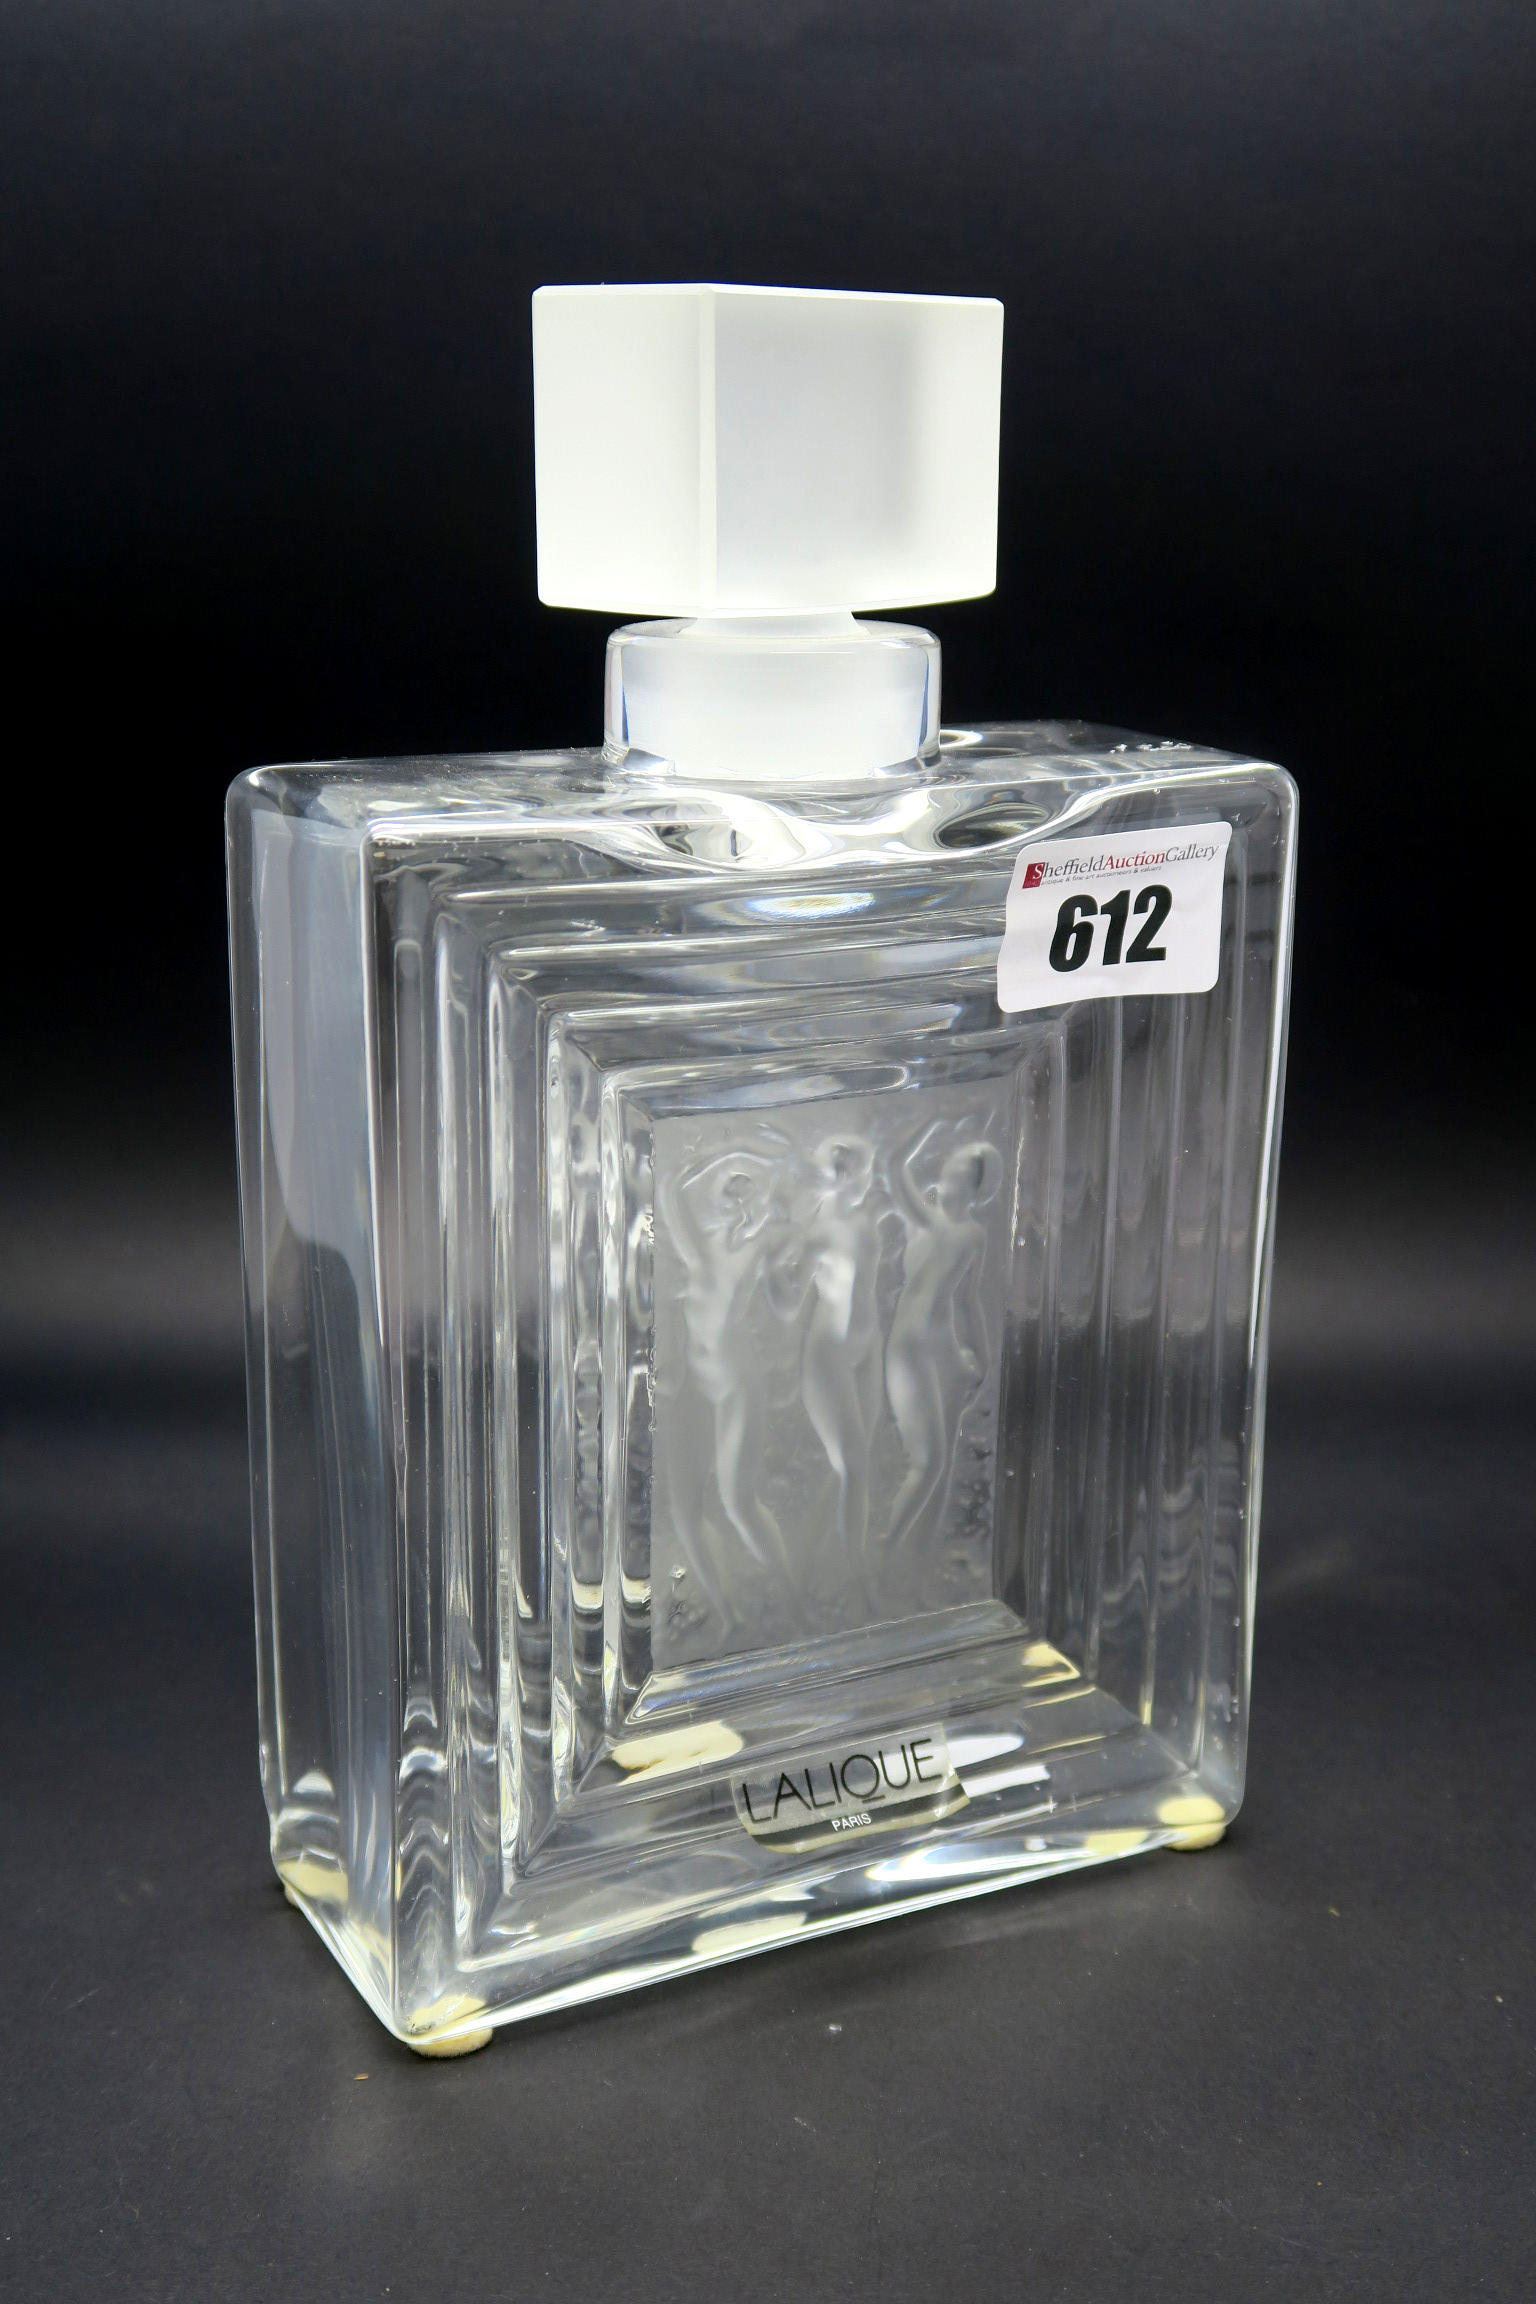 Lot 612 - A Lalique Glass Scent Bottle and Stopper, modelled in the 'Duncan' design, of ribbed, rectangular